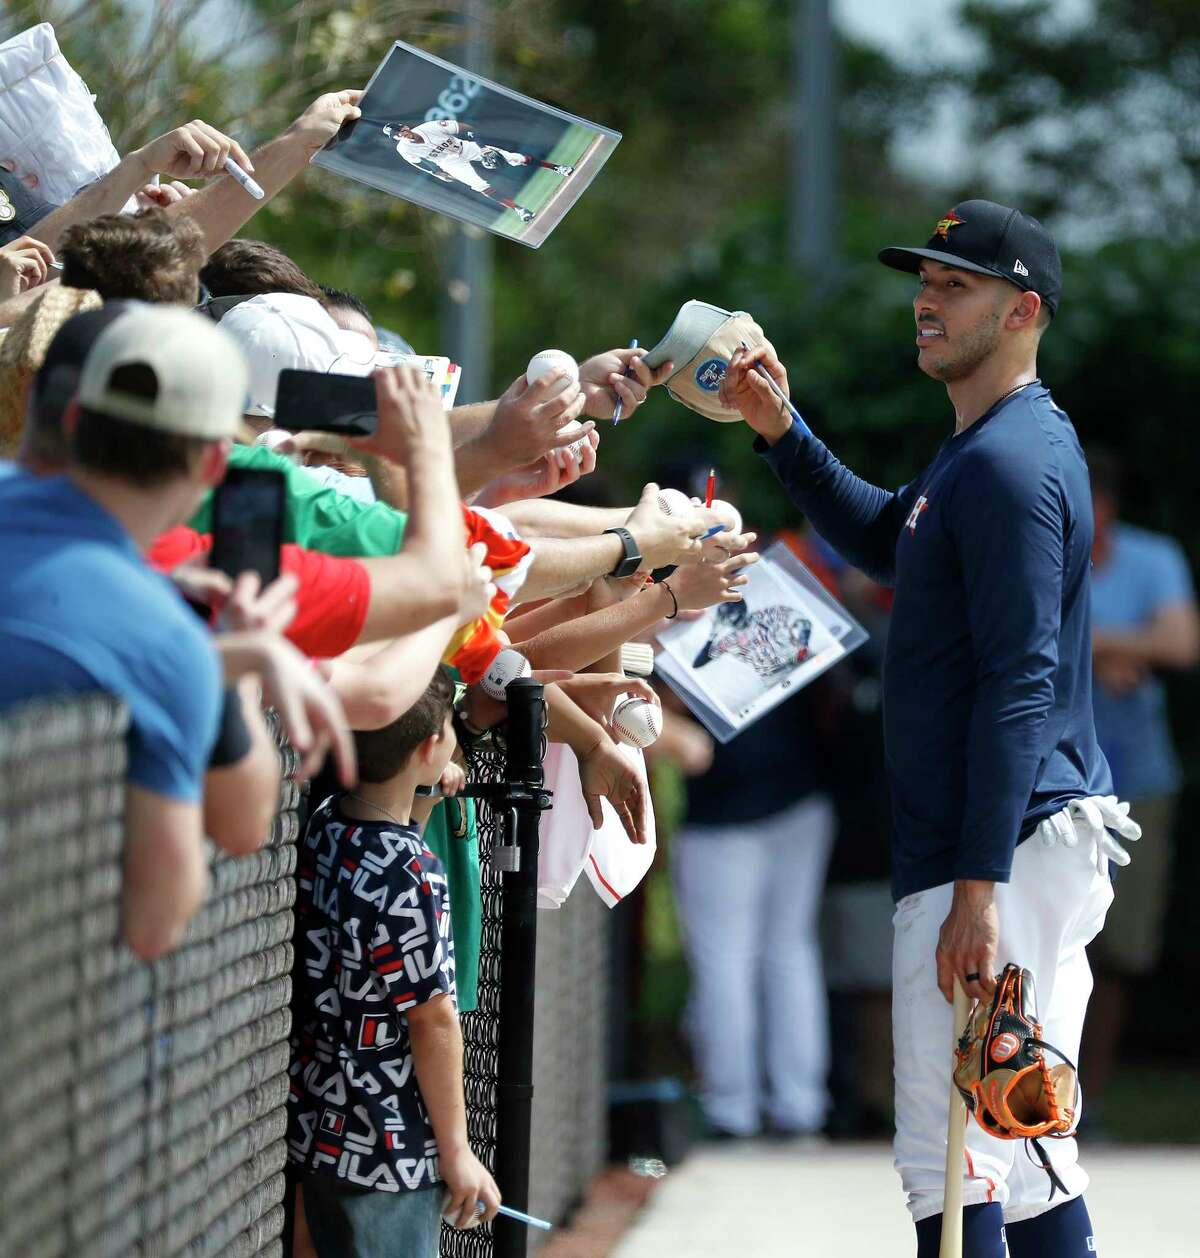 Houston Astros infielder Carlos Correa signs autographs for fans during the first full-squad Houston Astros spring training workout at the Fitteam Ballpark of The Palm Beaches, in West Palm Beach , Monday, Feb. 17, 2020.